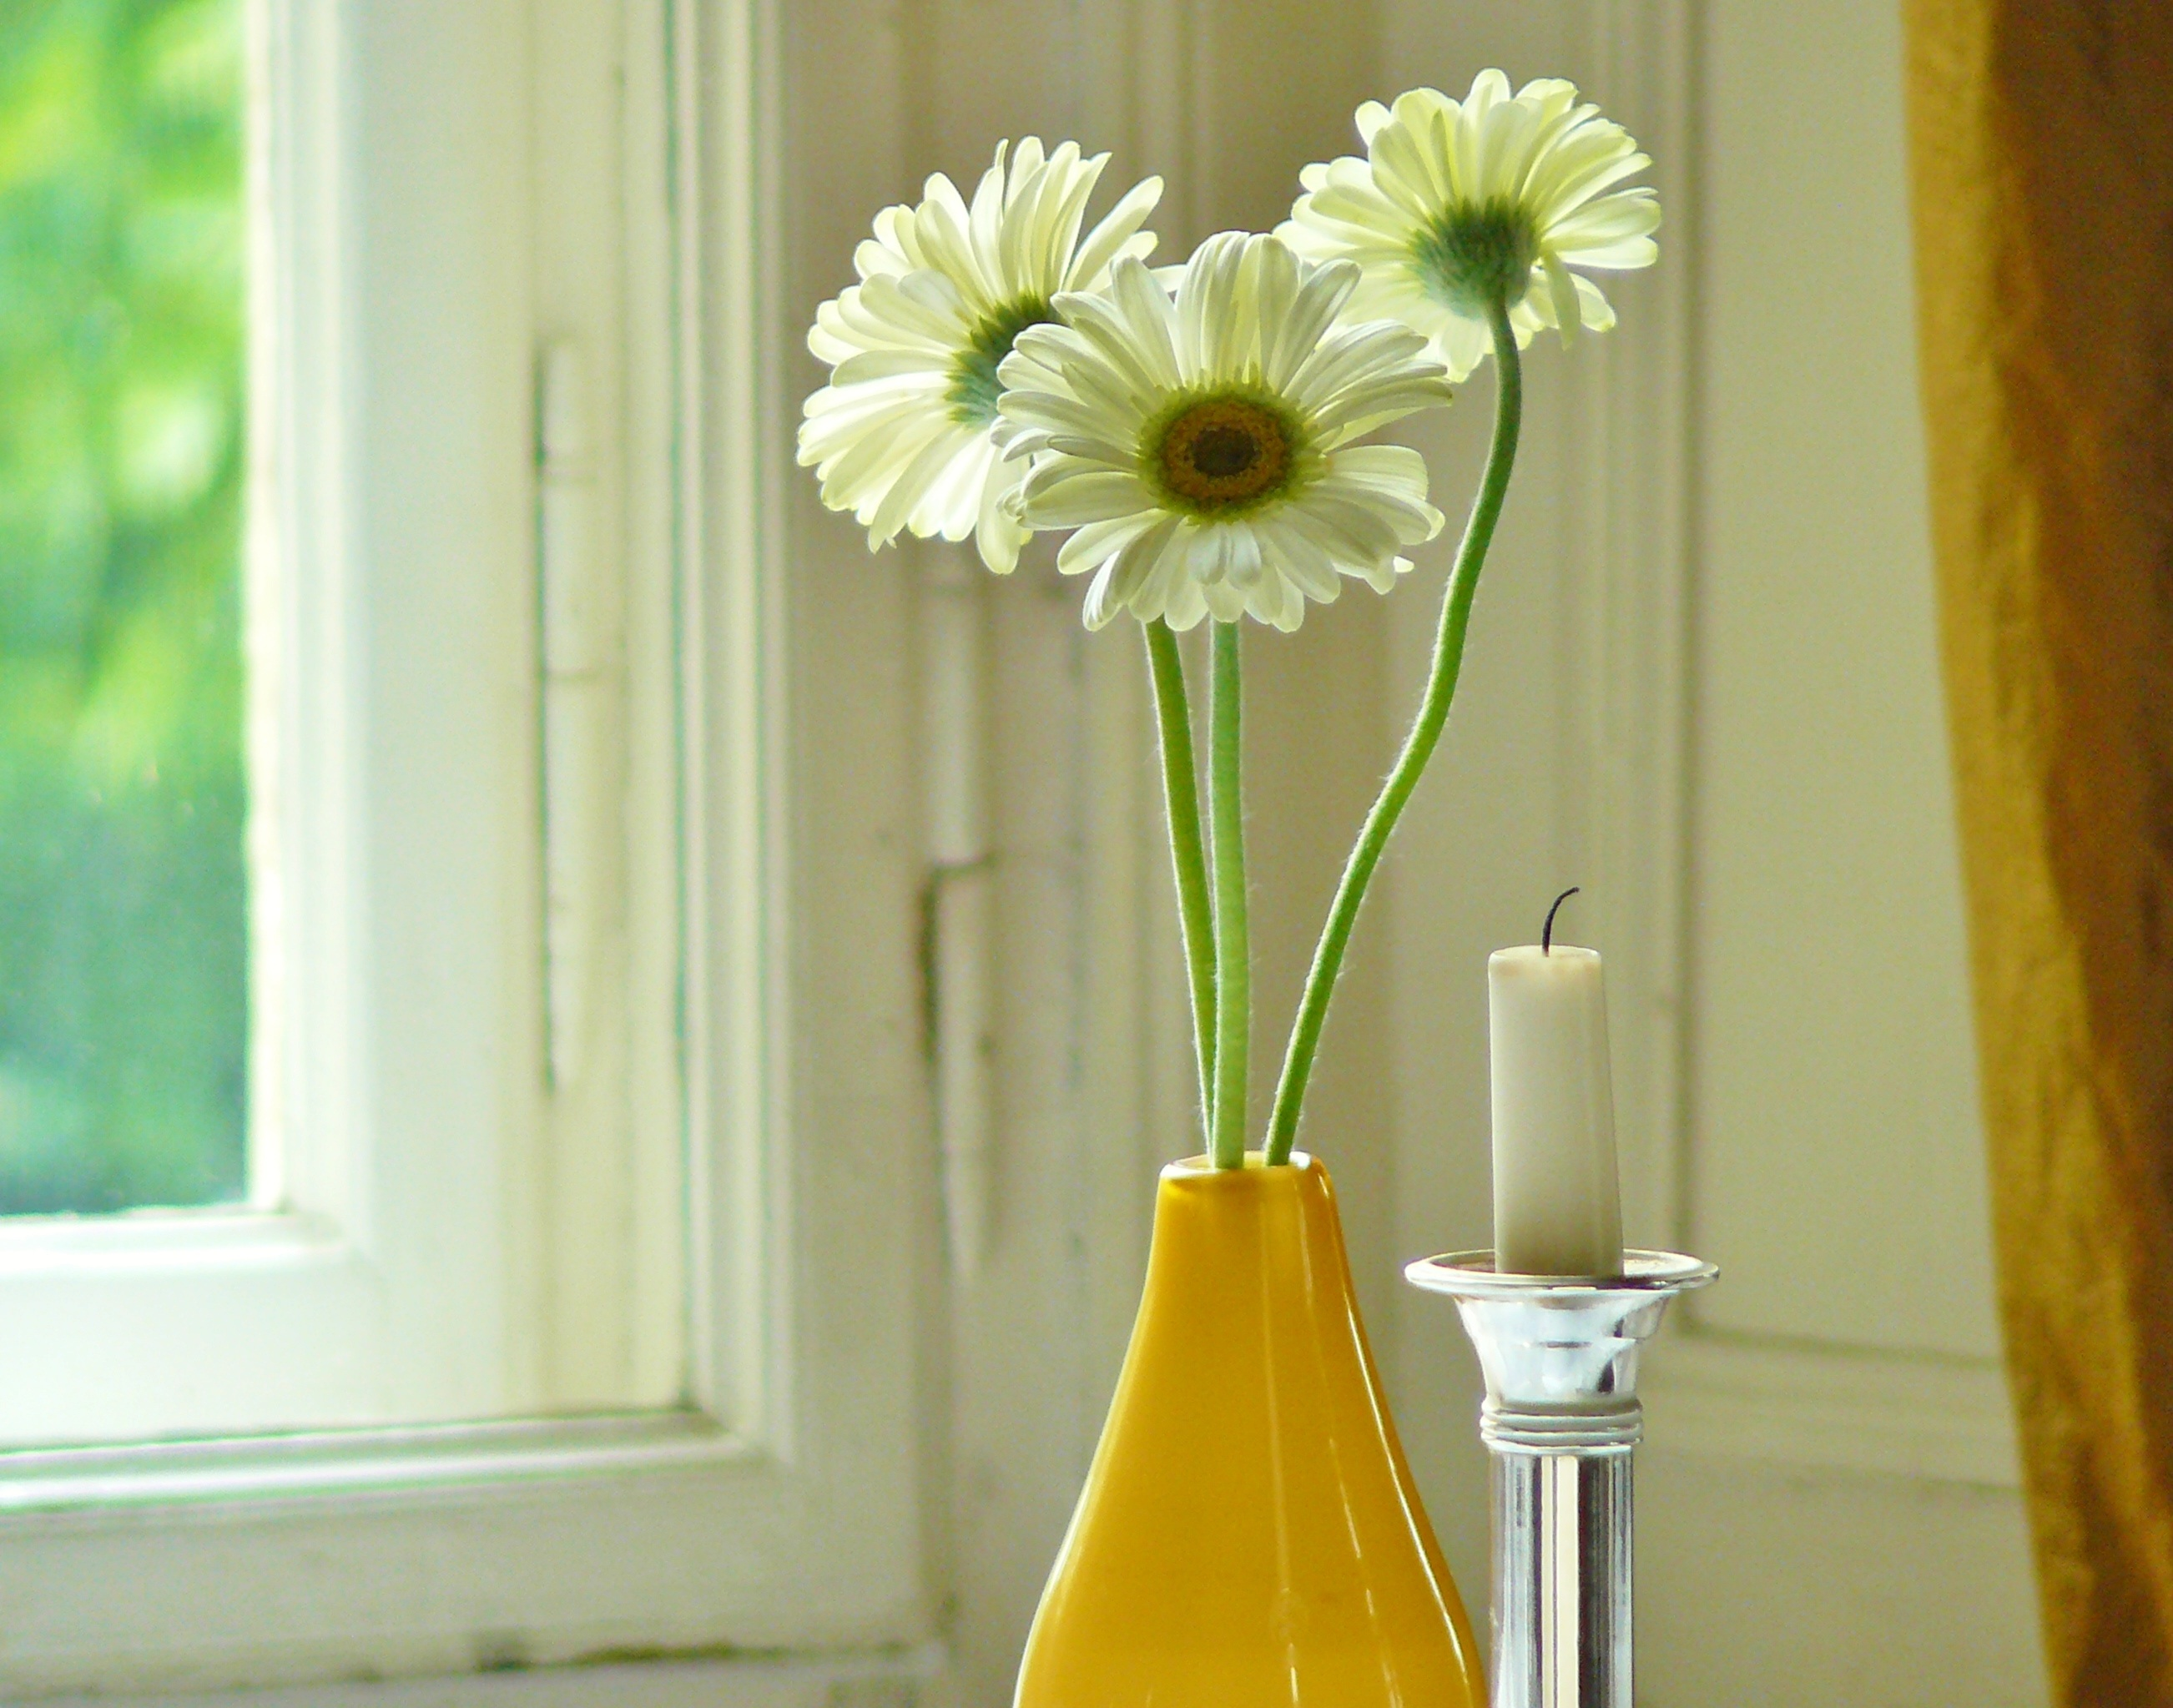 Flowers in the Room, Blooming, Flower, Fragrance, Fresh, HQ Photo